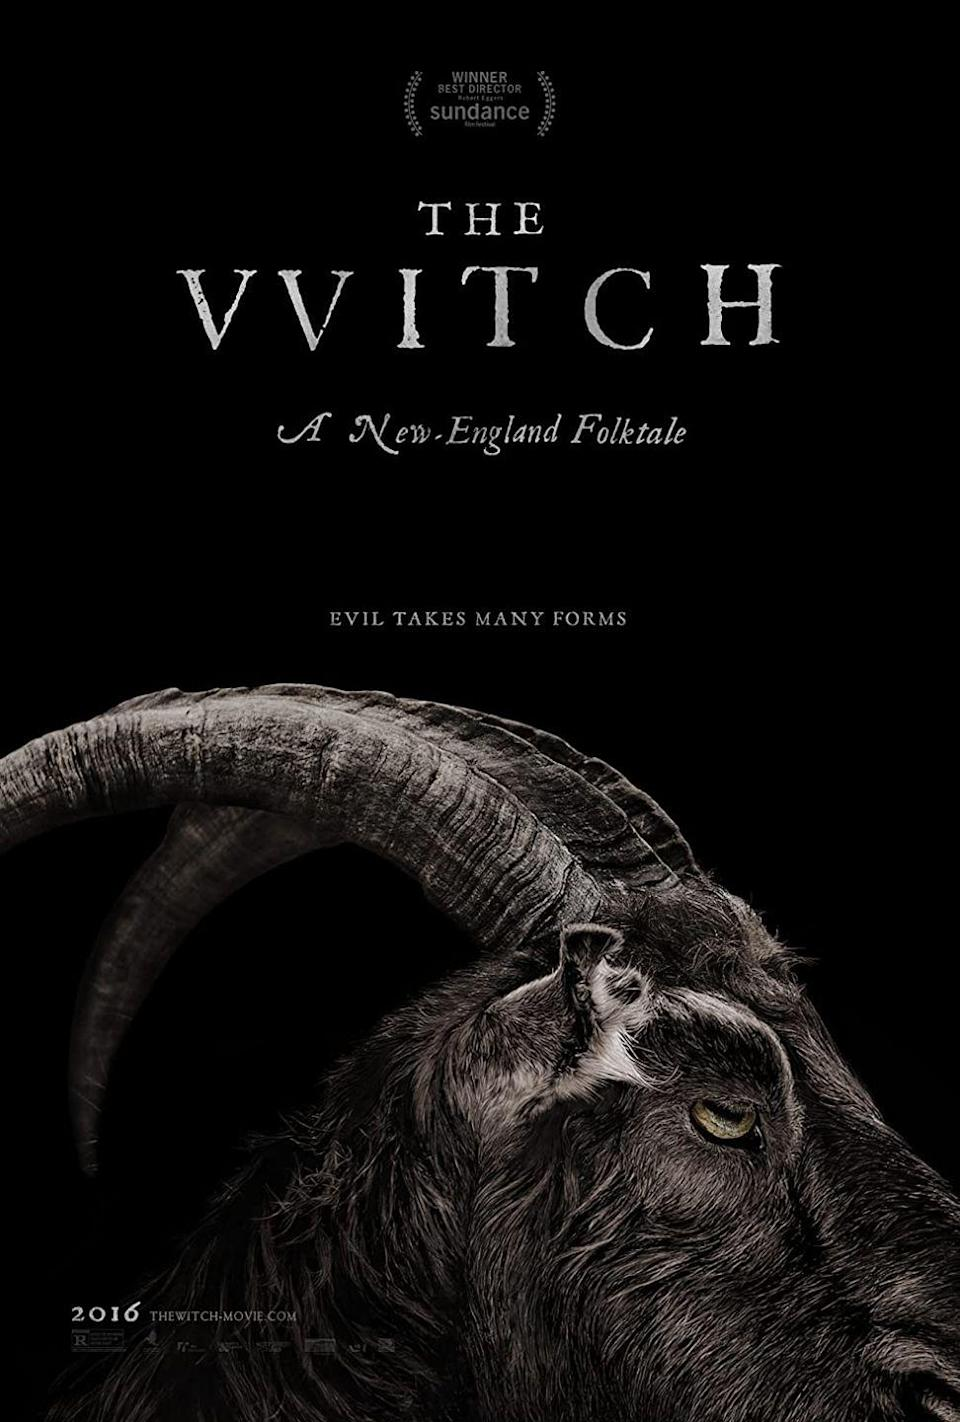 """<p>You're definitely going to want to wait until the kids go down to lower the lights in the living room theater for this truly freaky tale. The horror flick is set in 1600s New England. When a family's son vanishes, they blame the daughter who'd been watching him — was it witchcraft?<br></p><p><a class=""""link rapid-noclick-resp"""" href=""""https://www.amazon.com/Witch-Anya-Taylor-Joy/dp/B01BT3K19G?tag=syn-yahoo-20&ascsubtag=%5Bartid%7C10070.g.37360837%5Bsrc%7Cyahoo-us"""" rel=""""nofollow noopener"""" target=""""_blank"""" data-ylk=""""slk:WATCH NOW"""">WATCH NOW</a></p>"""